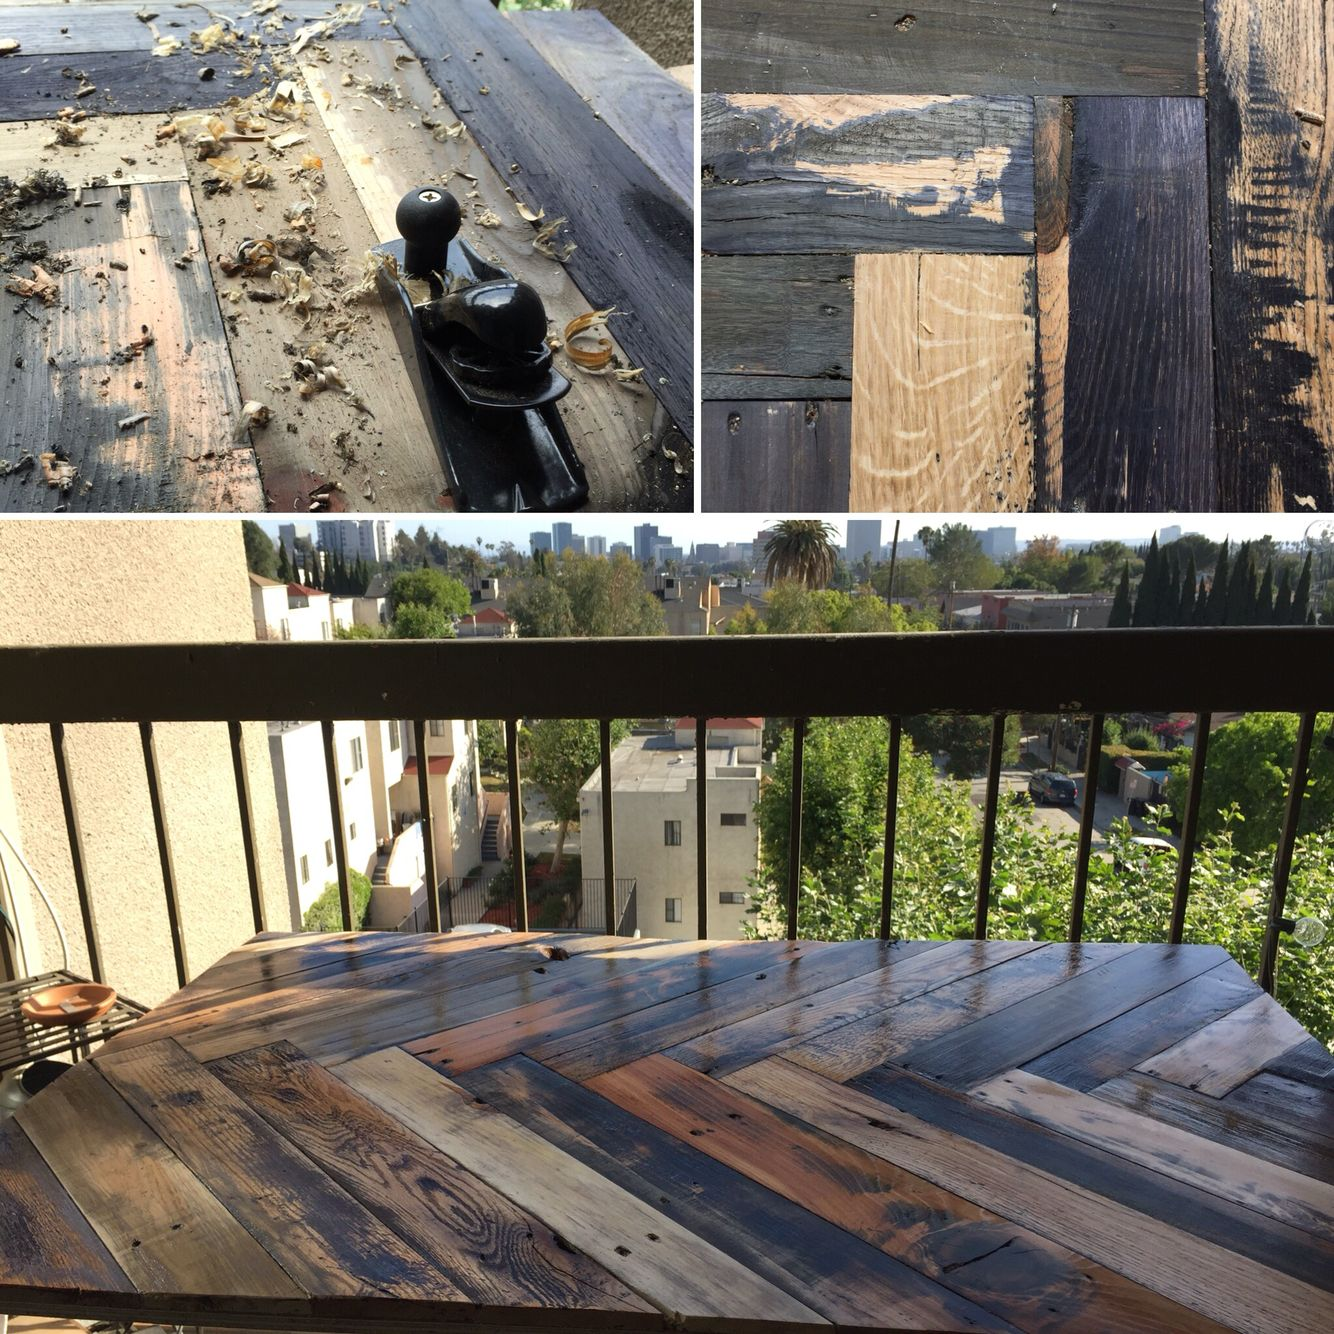 Reclaimed pallet table project. Available to order soon on etsy!